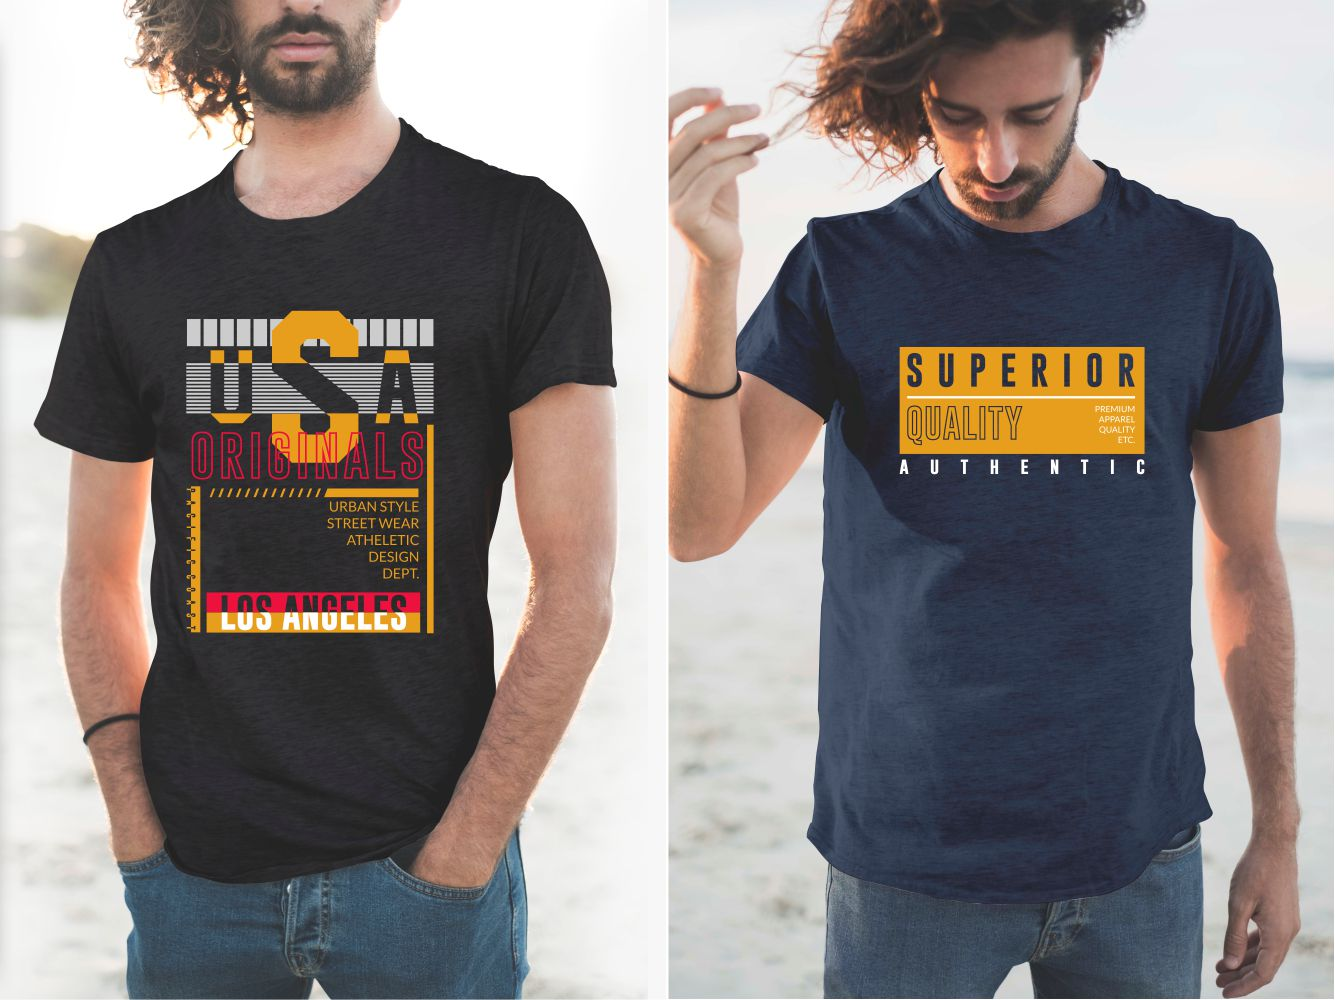 Navy blue and black T-shirts with beautiful yellow USA State lettering.